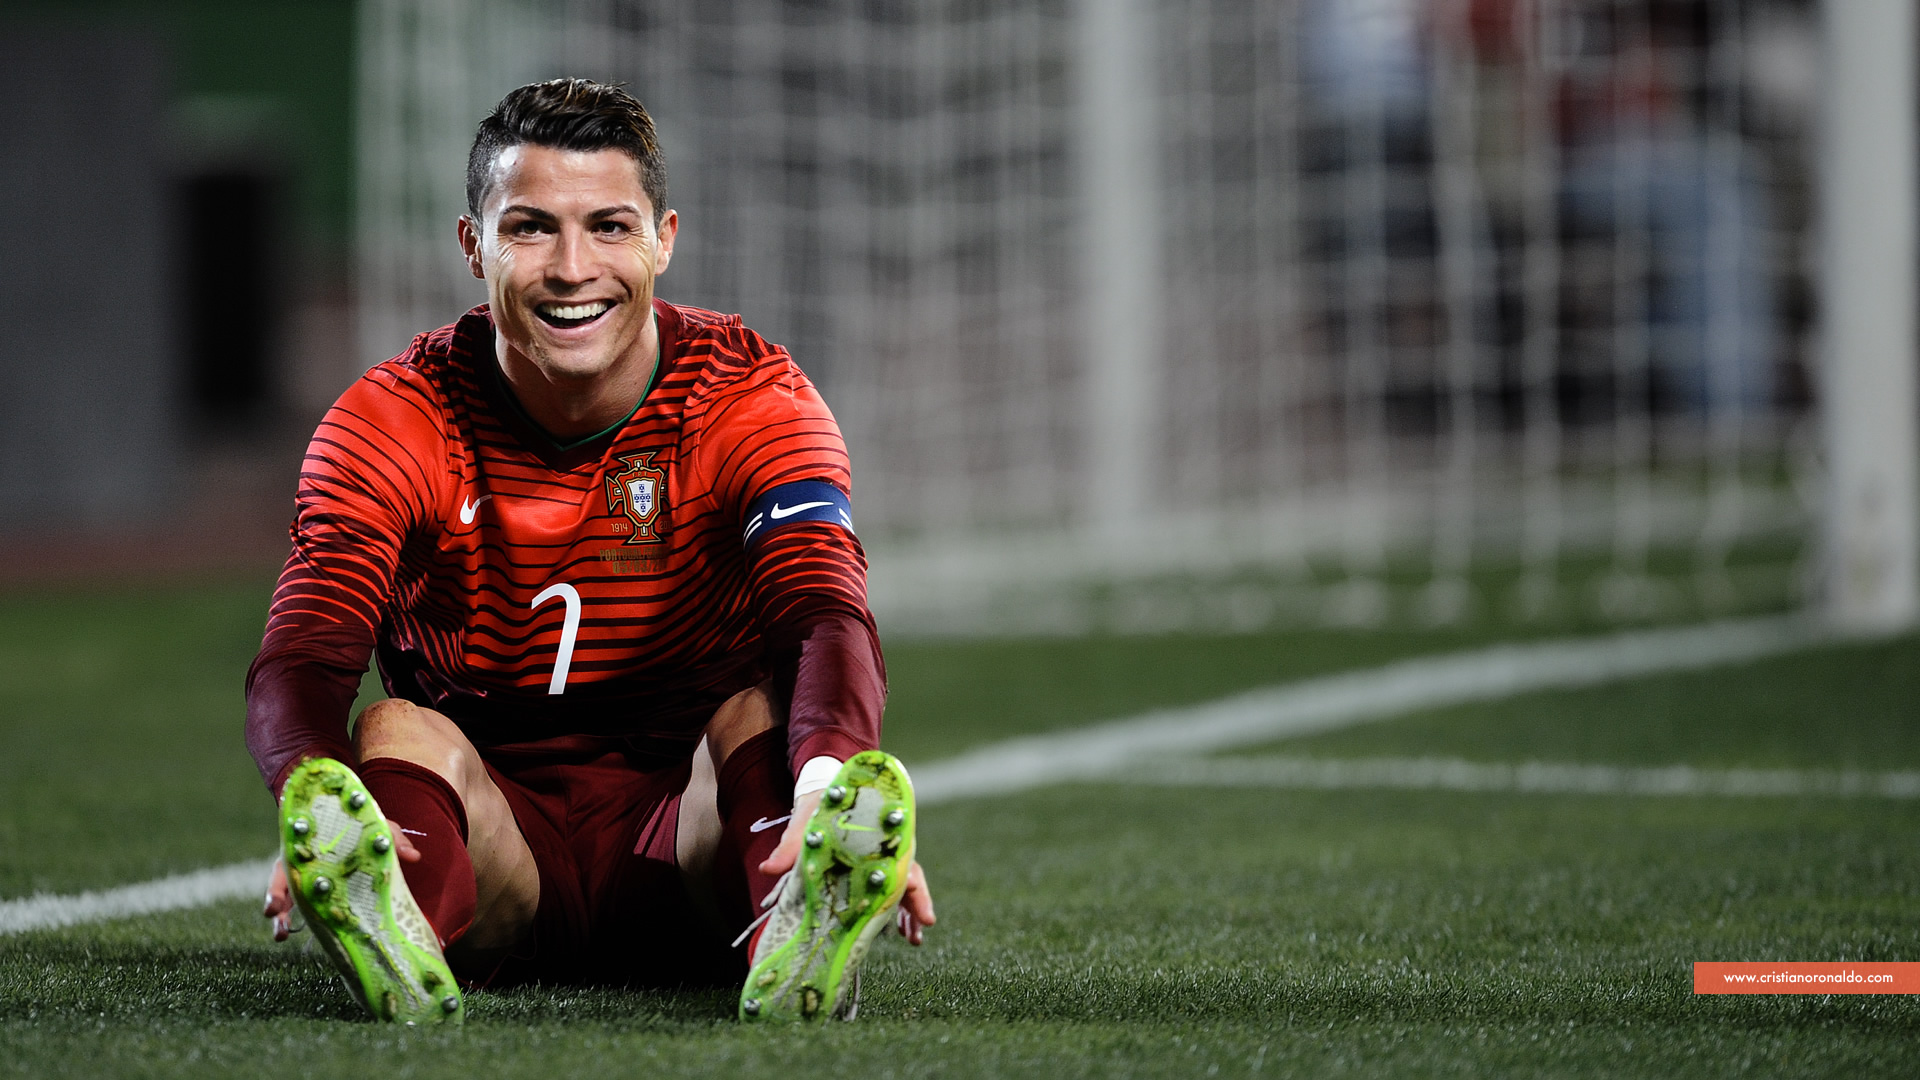 ronaldo smiling face pictures in portugal jersey of red color